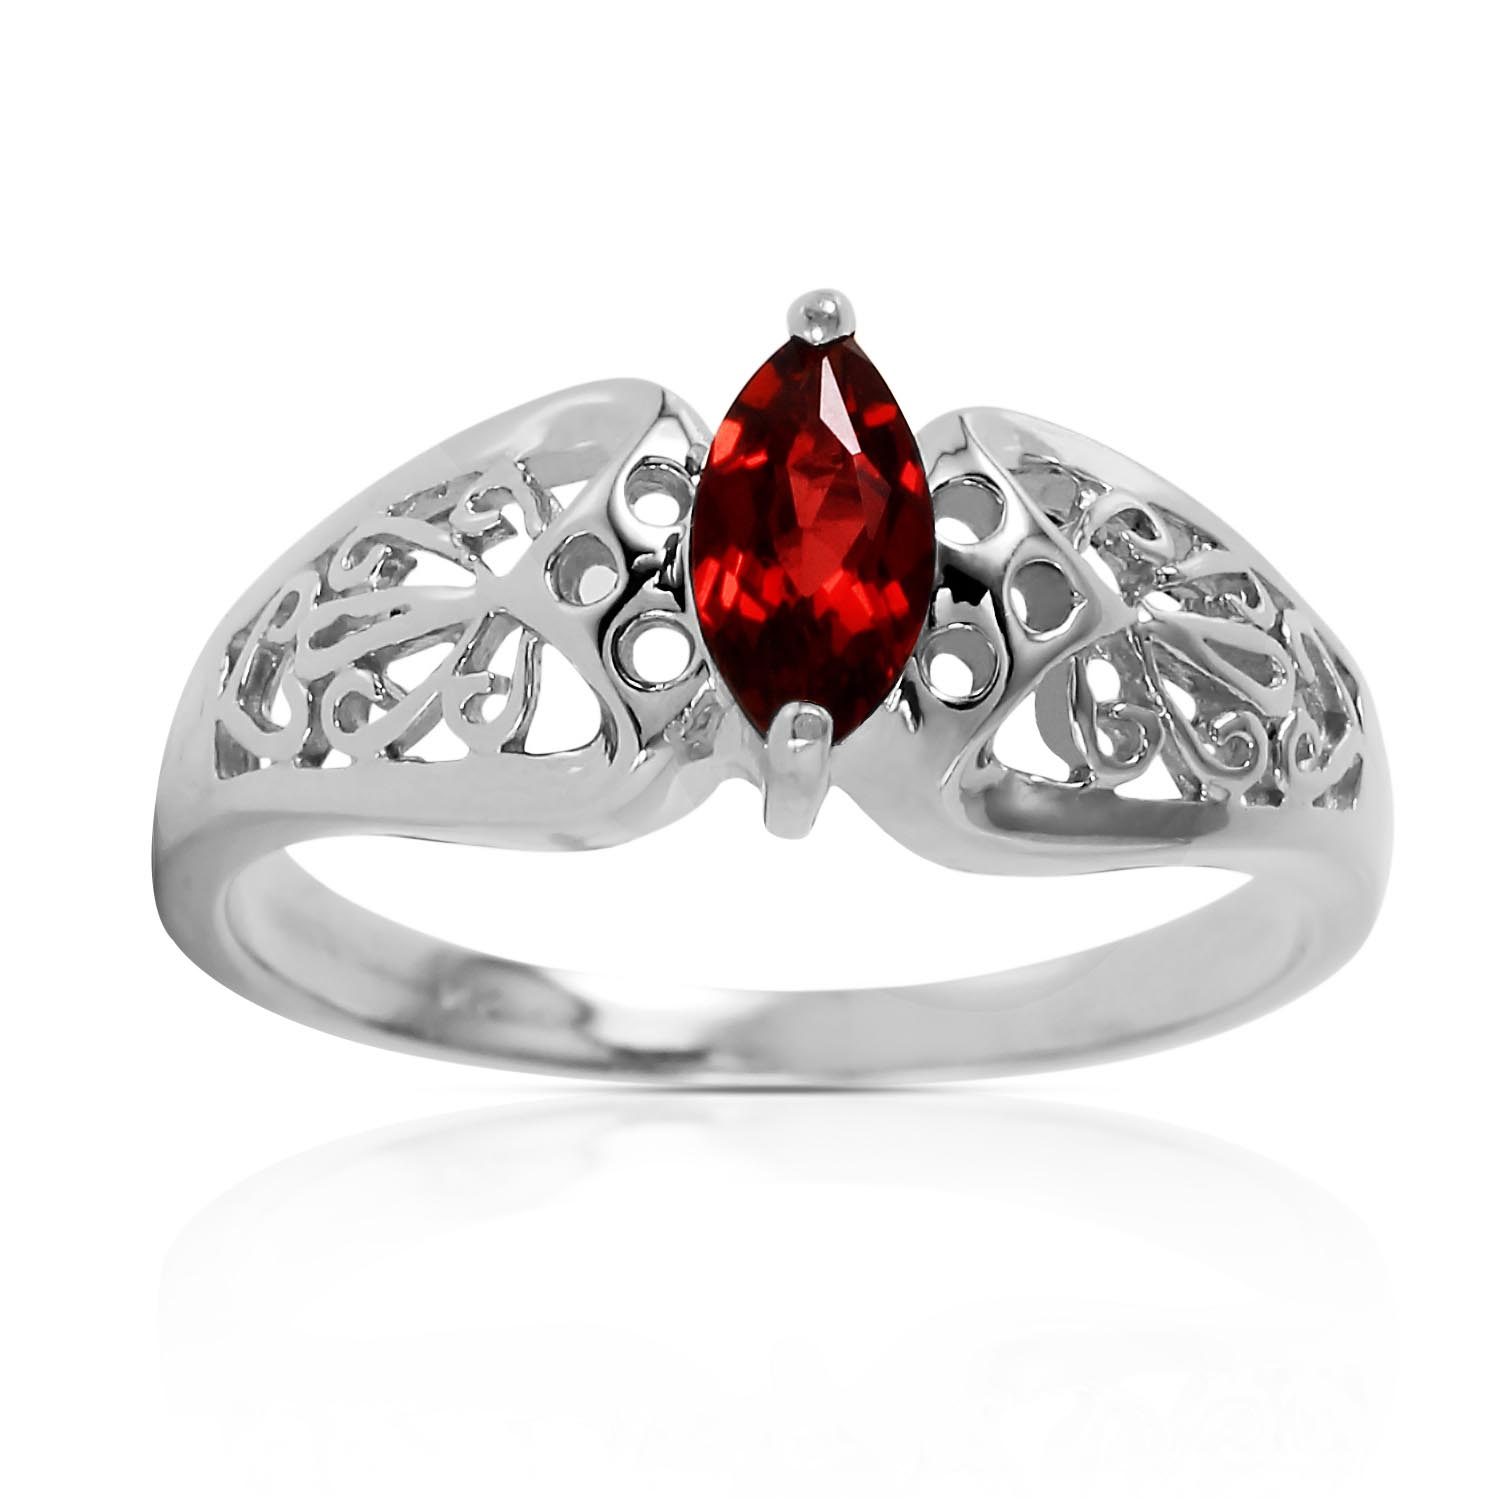 Marquise Cut Garnet Filigree Ring 0.2ct in 14K White Gold